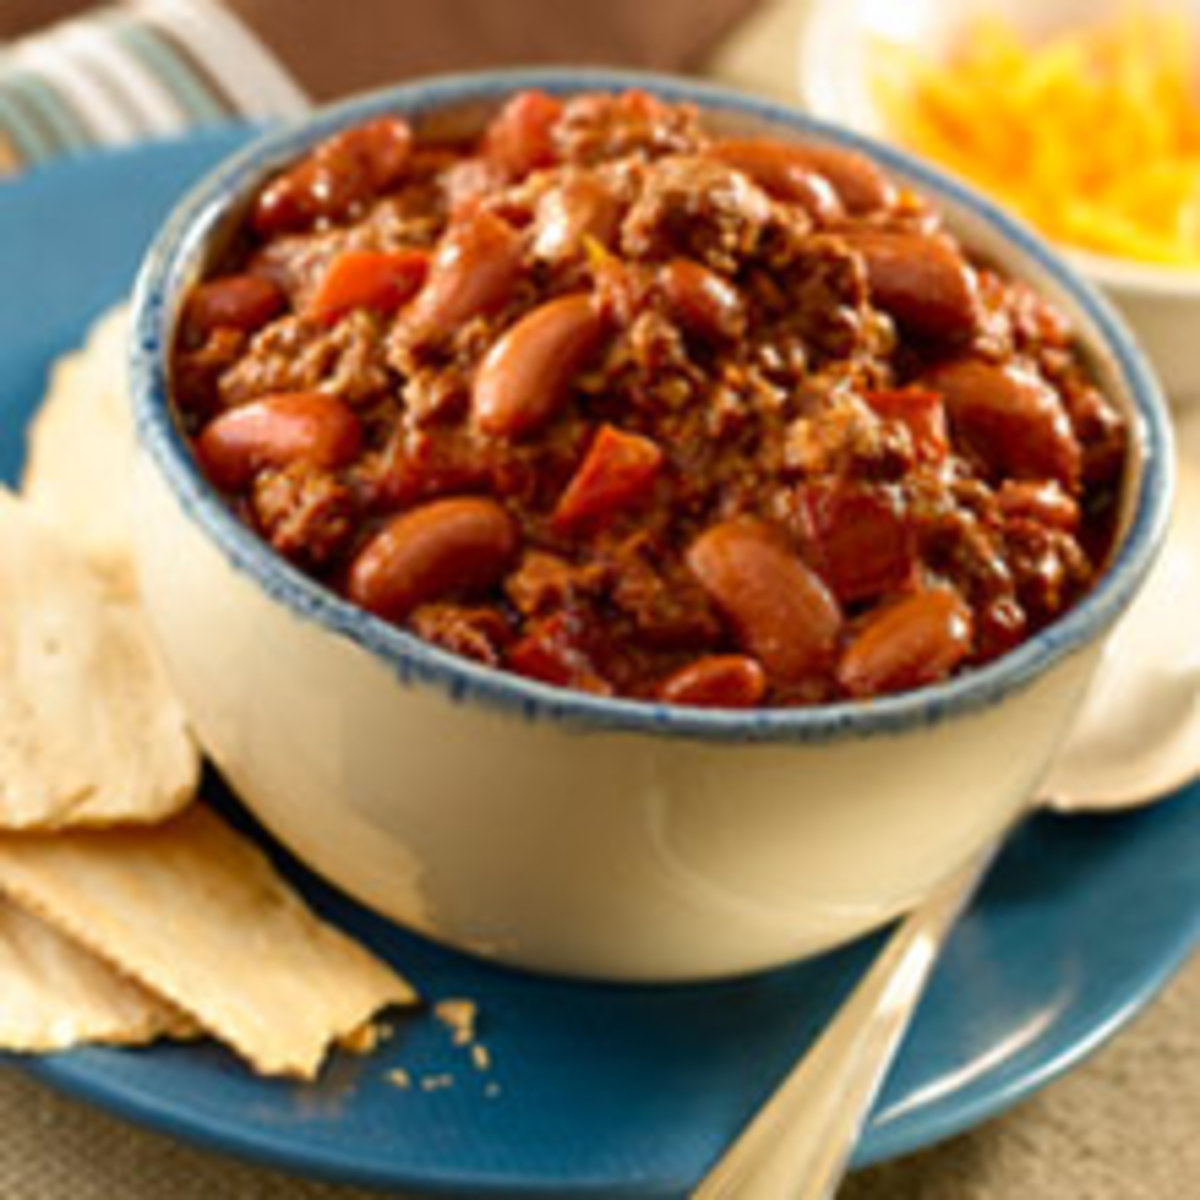 Here is a quick and easy recipe for Chili with Beans.